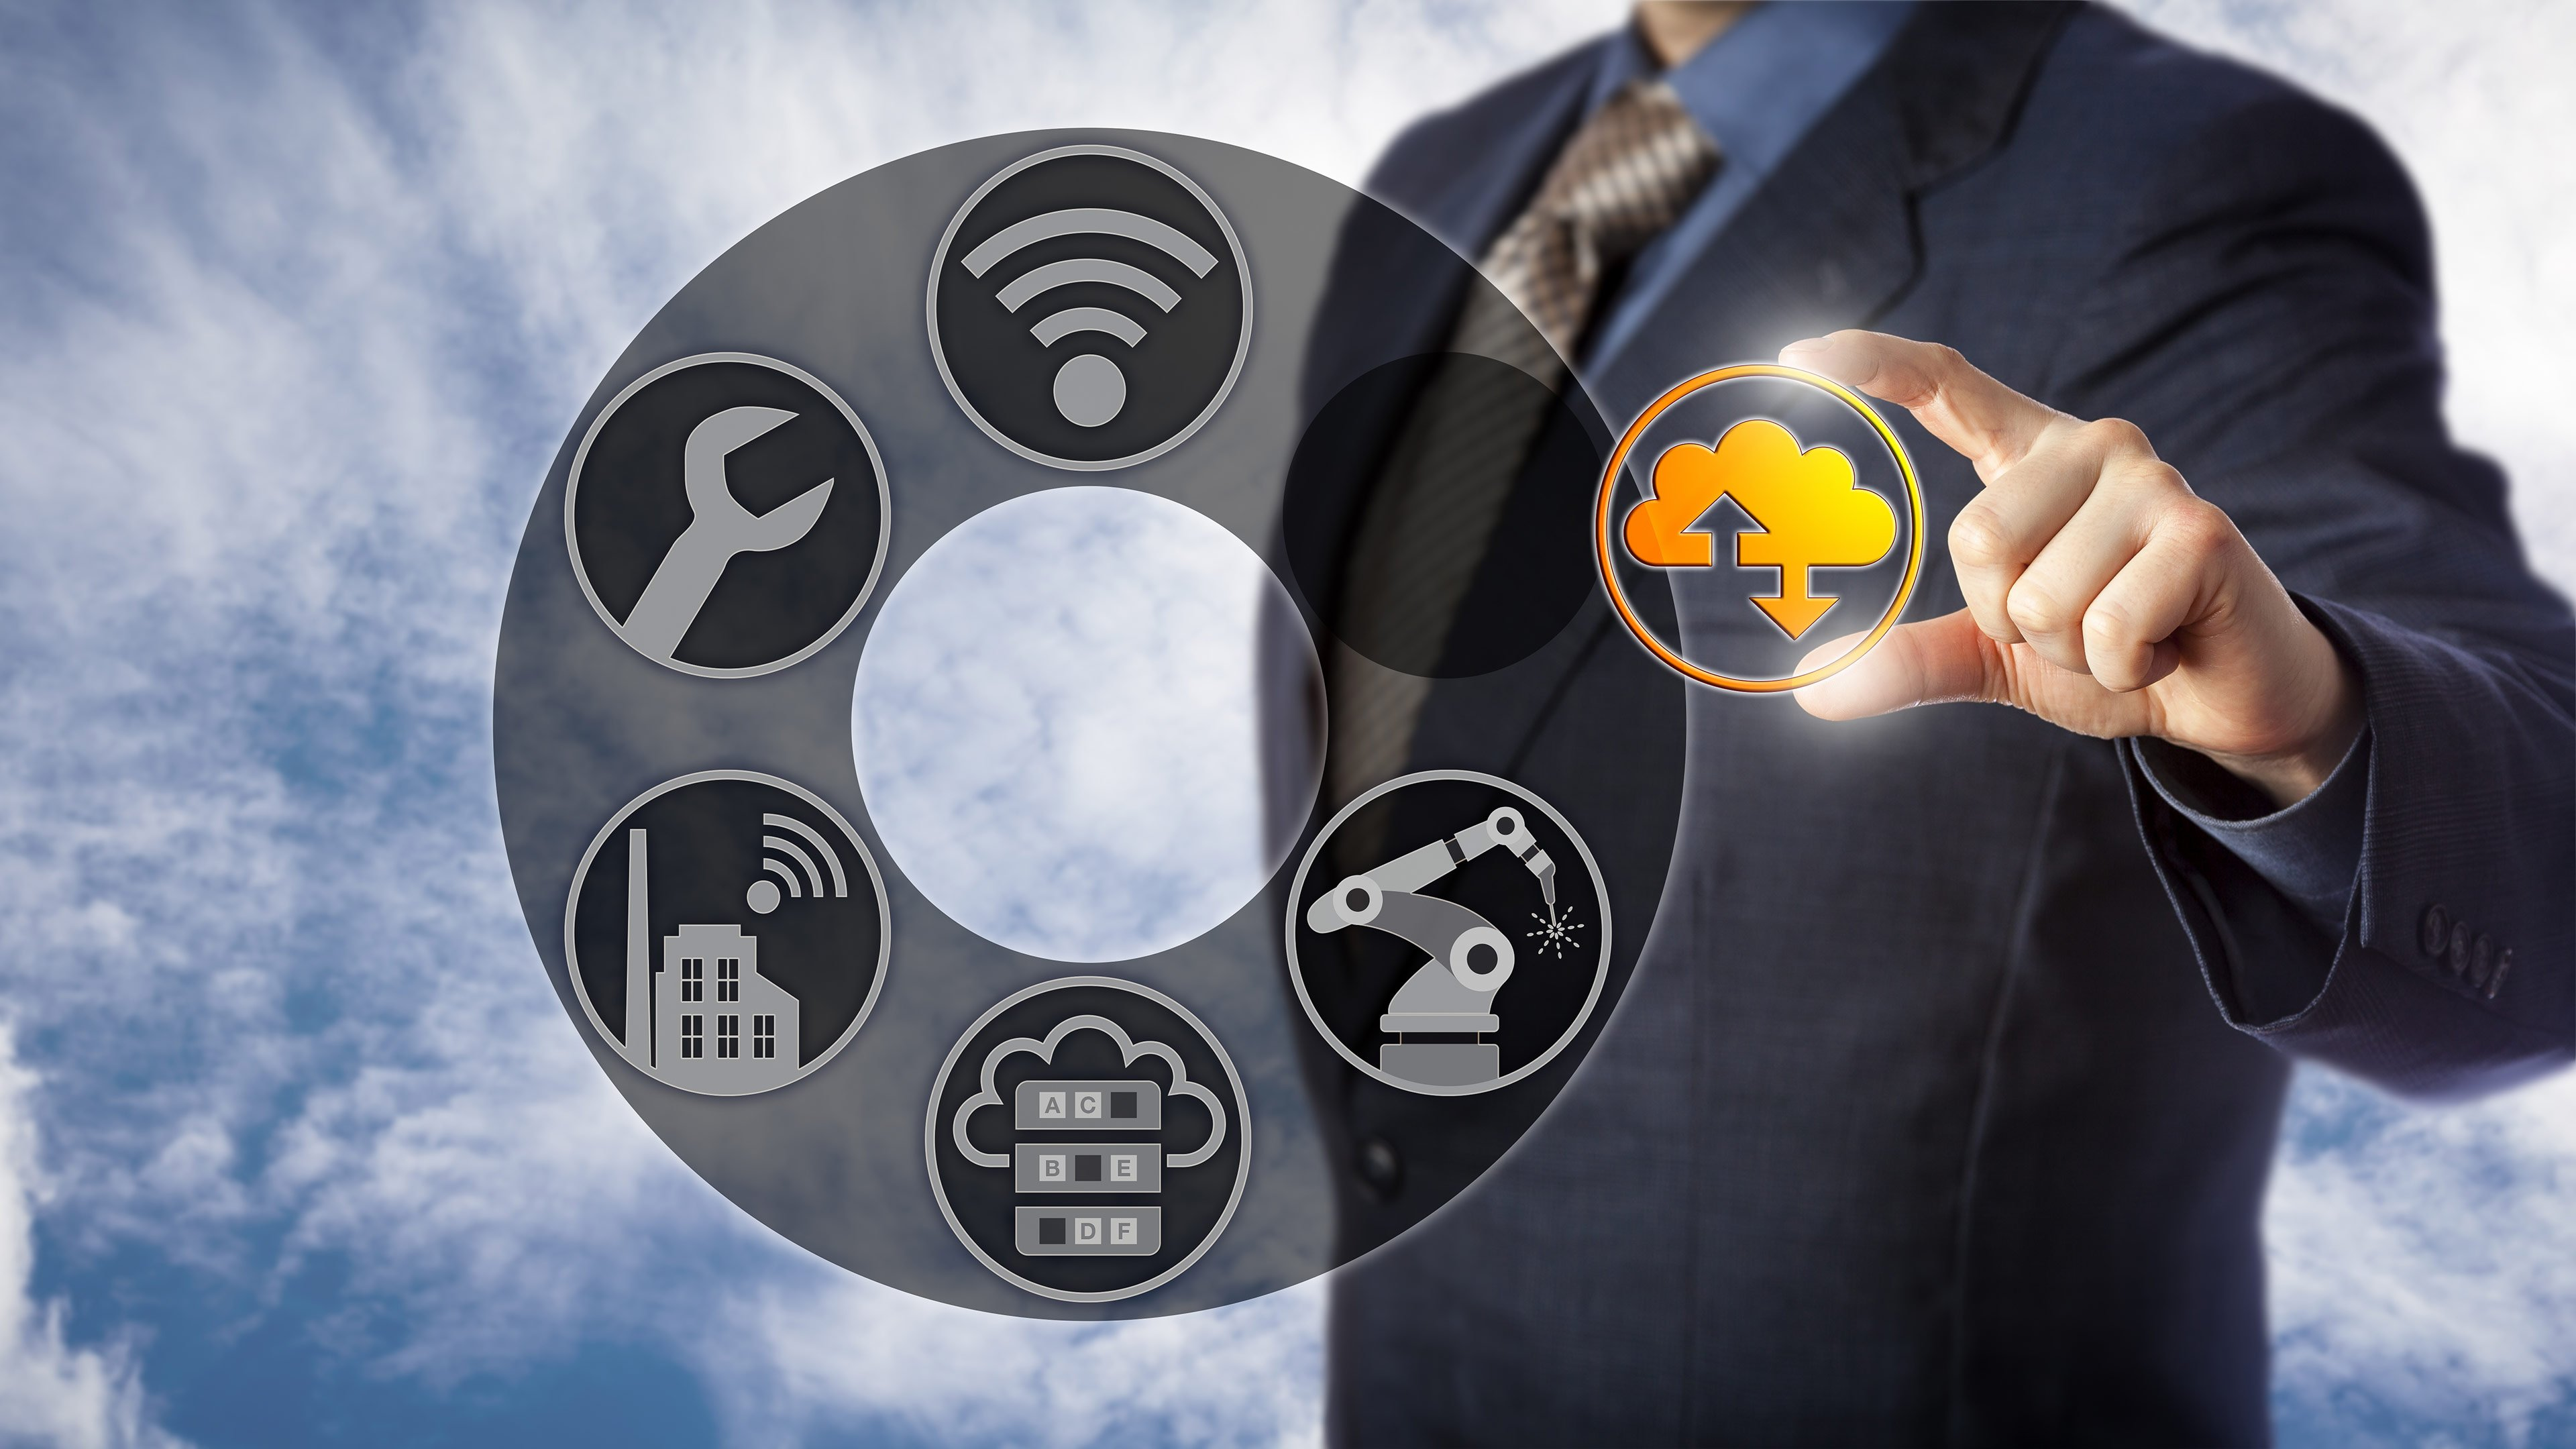 Connected Services for Industrial Operations